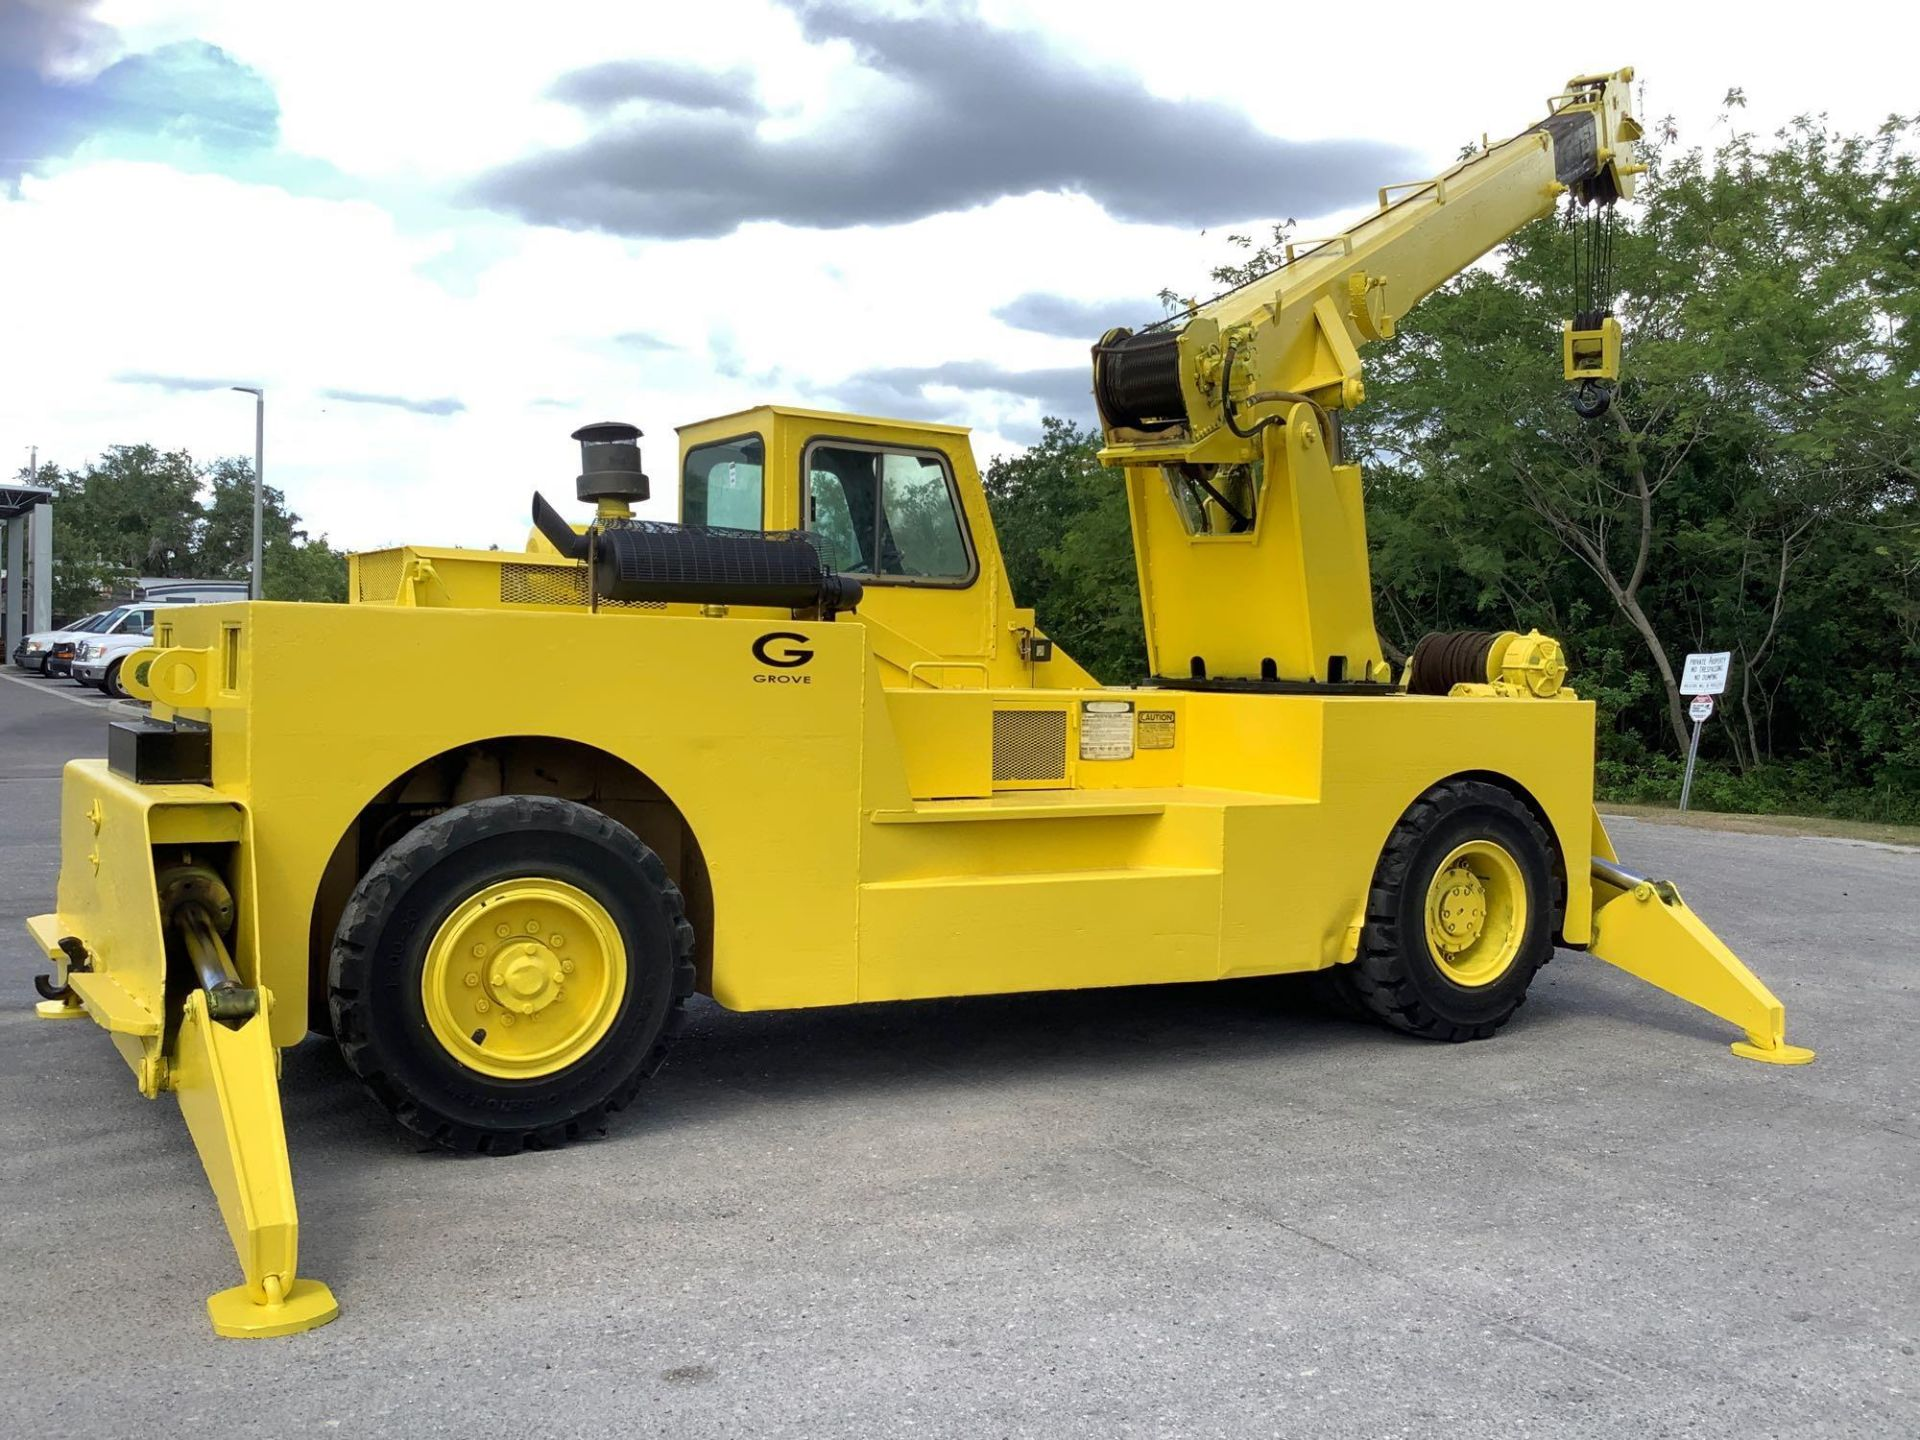 GROVE TRUCK CRANE MODEL IND1012, HYDRAULIC, TELESCOPIC, DIESEL,OUTRIGGER, RUNS AND OPERATES - Image 7 of 18